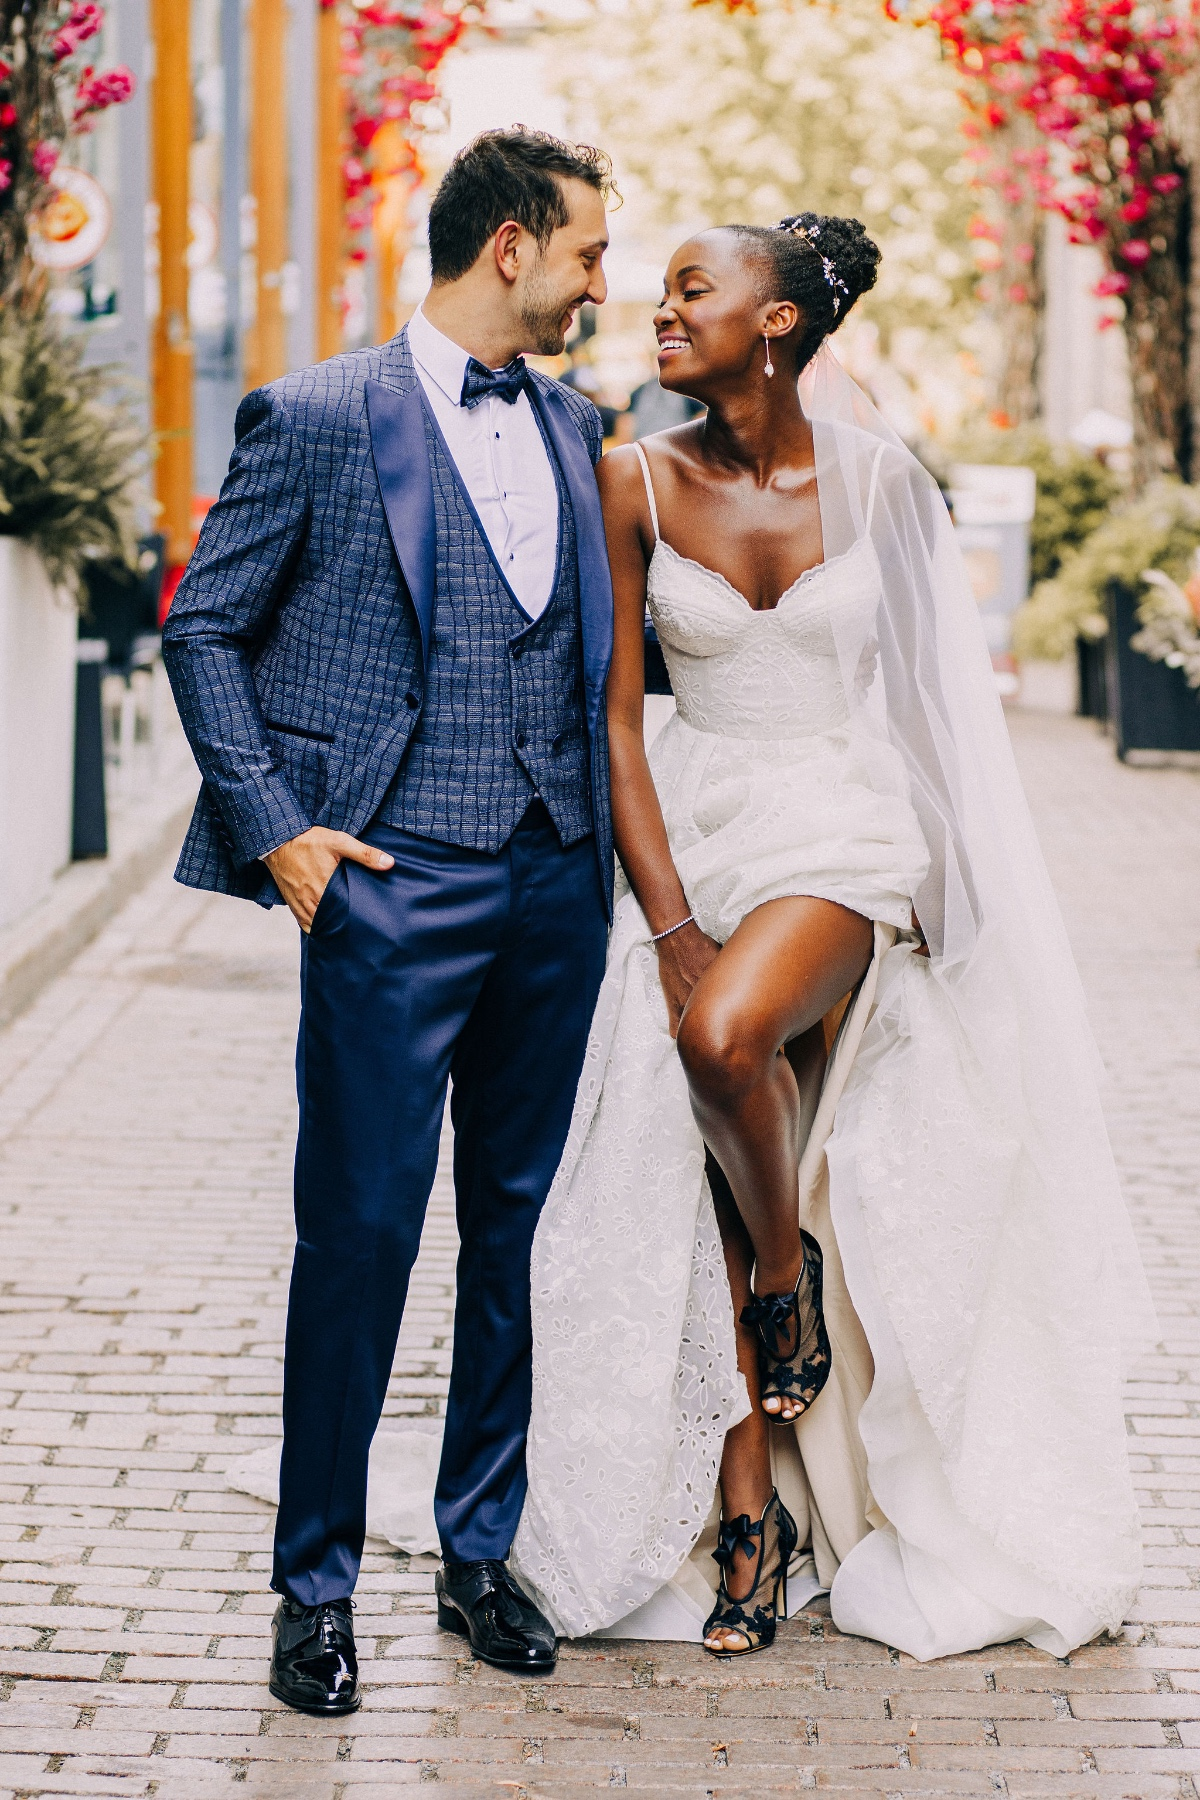 Love in the City Styled Because love has no Color, Ethnicity, or Religious Belief